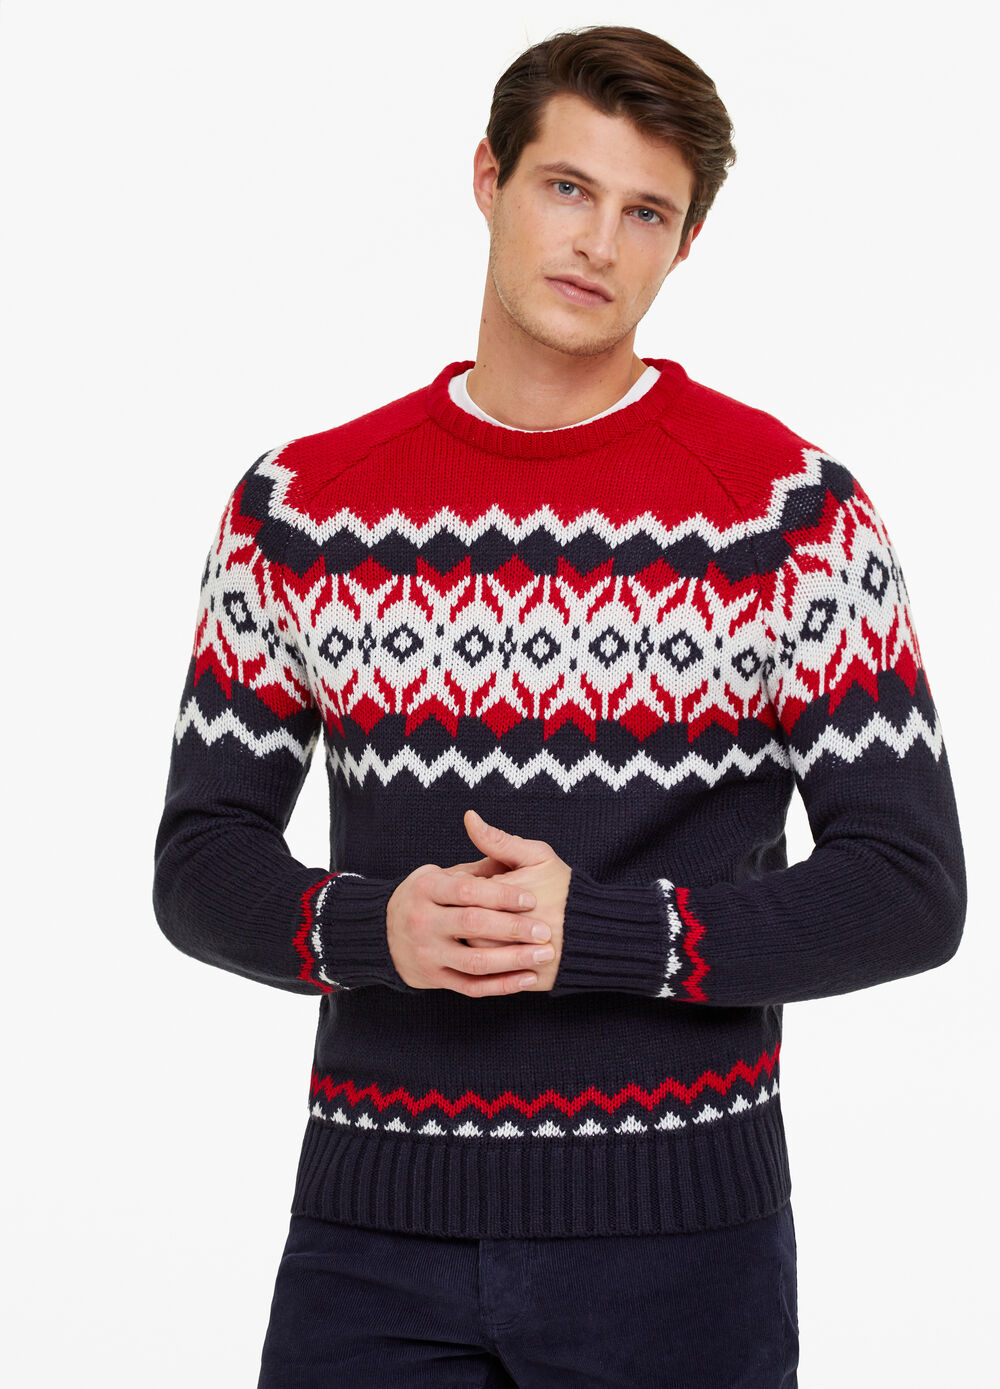 Christmas sweater with round neck